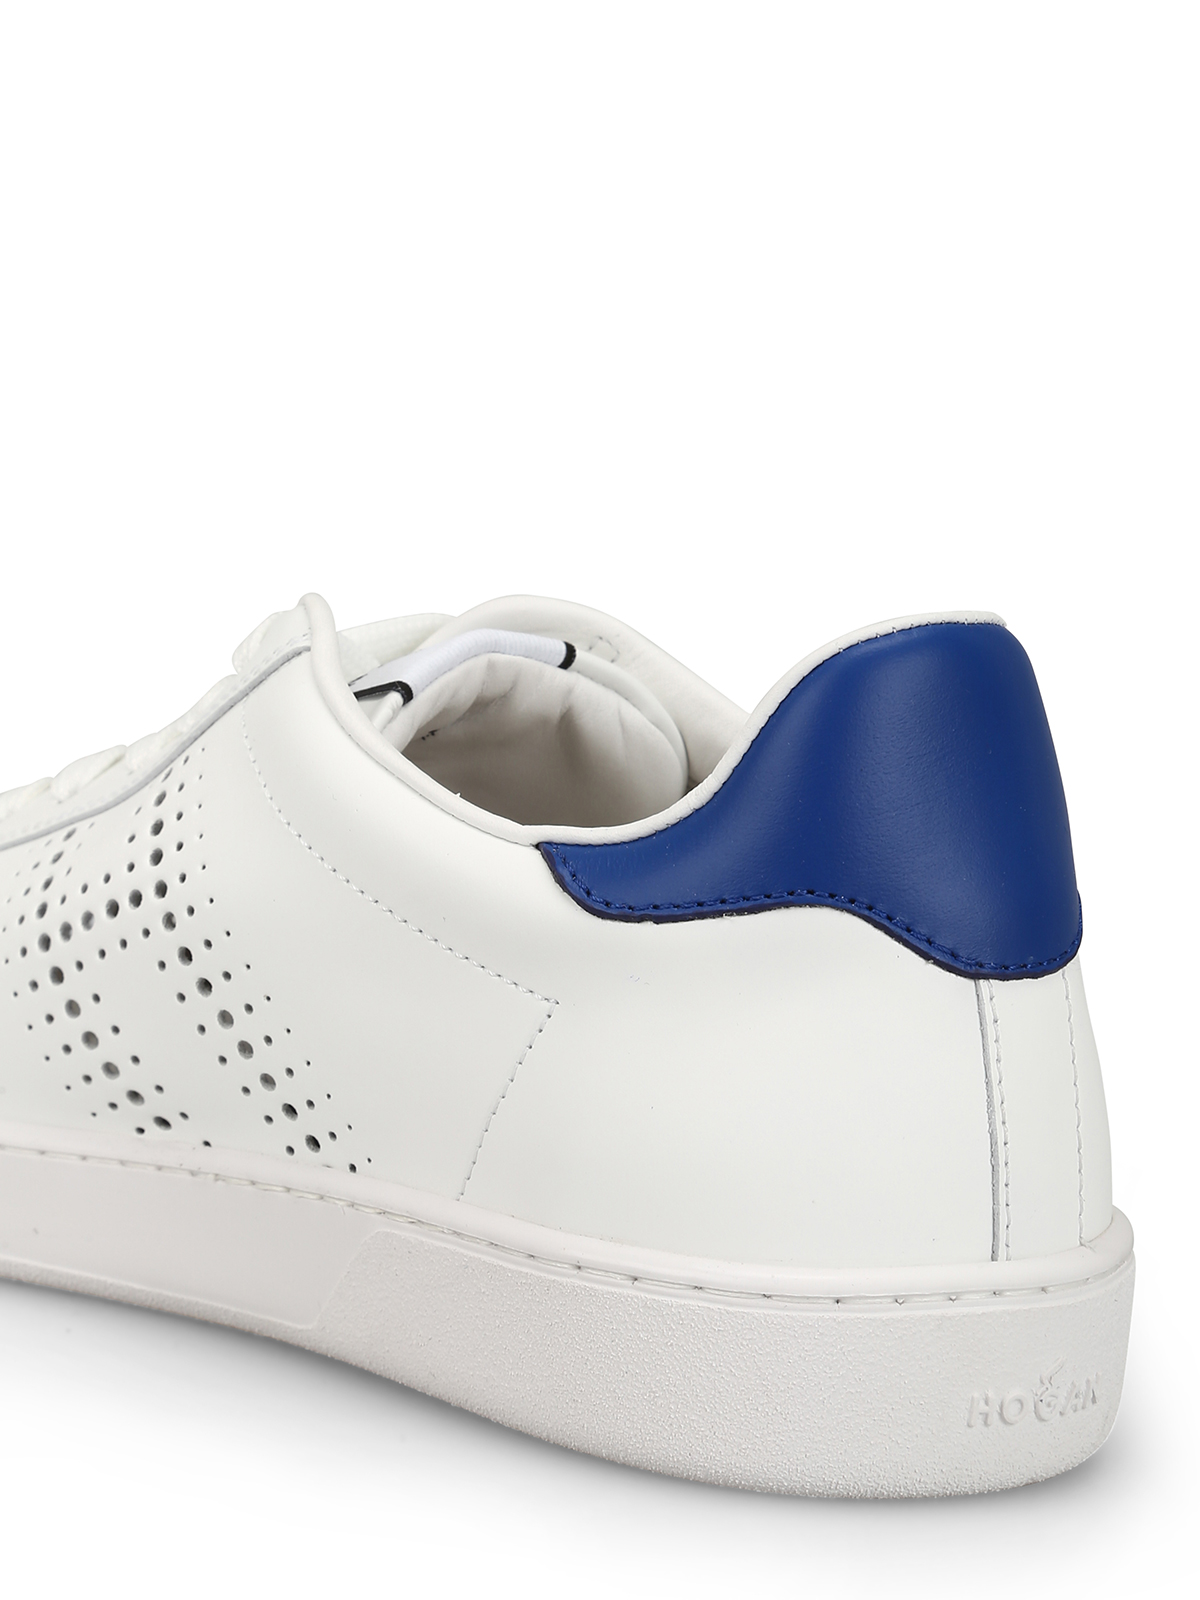 Trainers Hogan - H327 smooth leather white sneakers ...